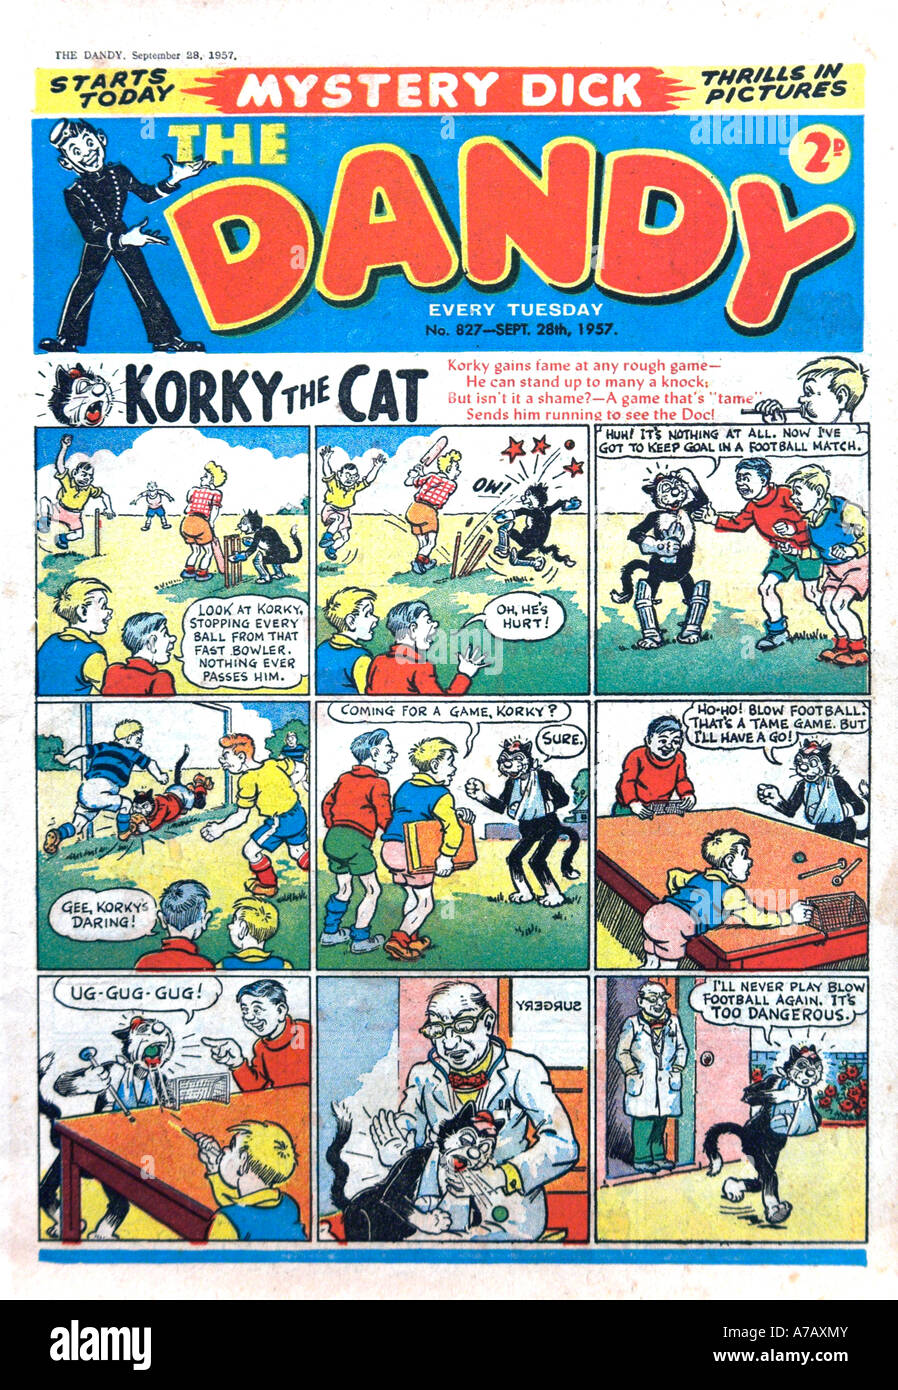 Dandy Comic 1957 EDITORIAL USE ONLY - Stock Image